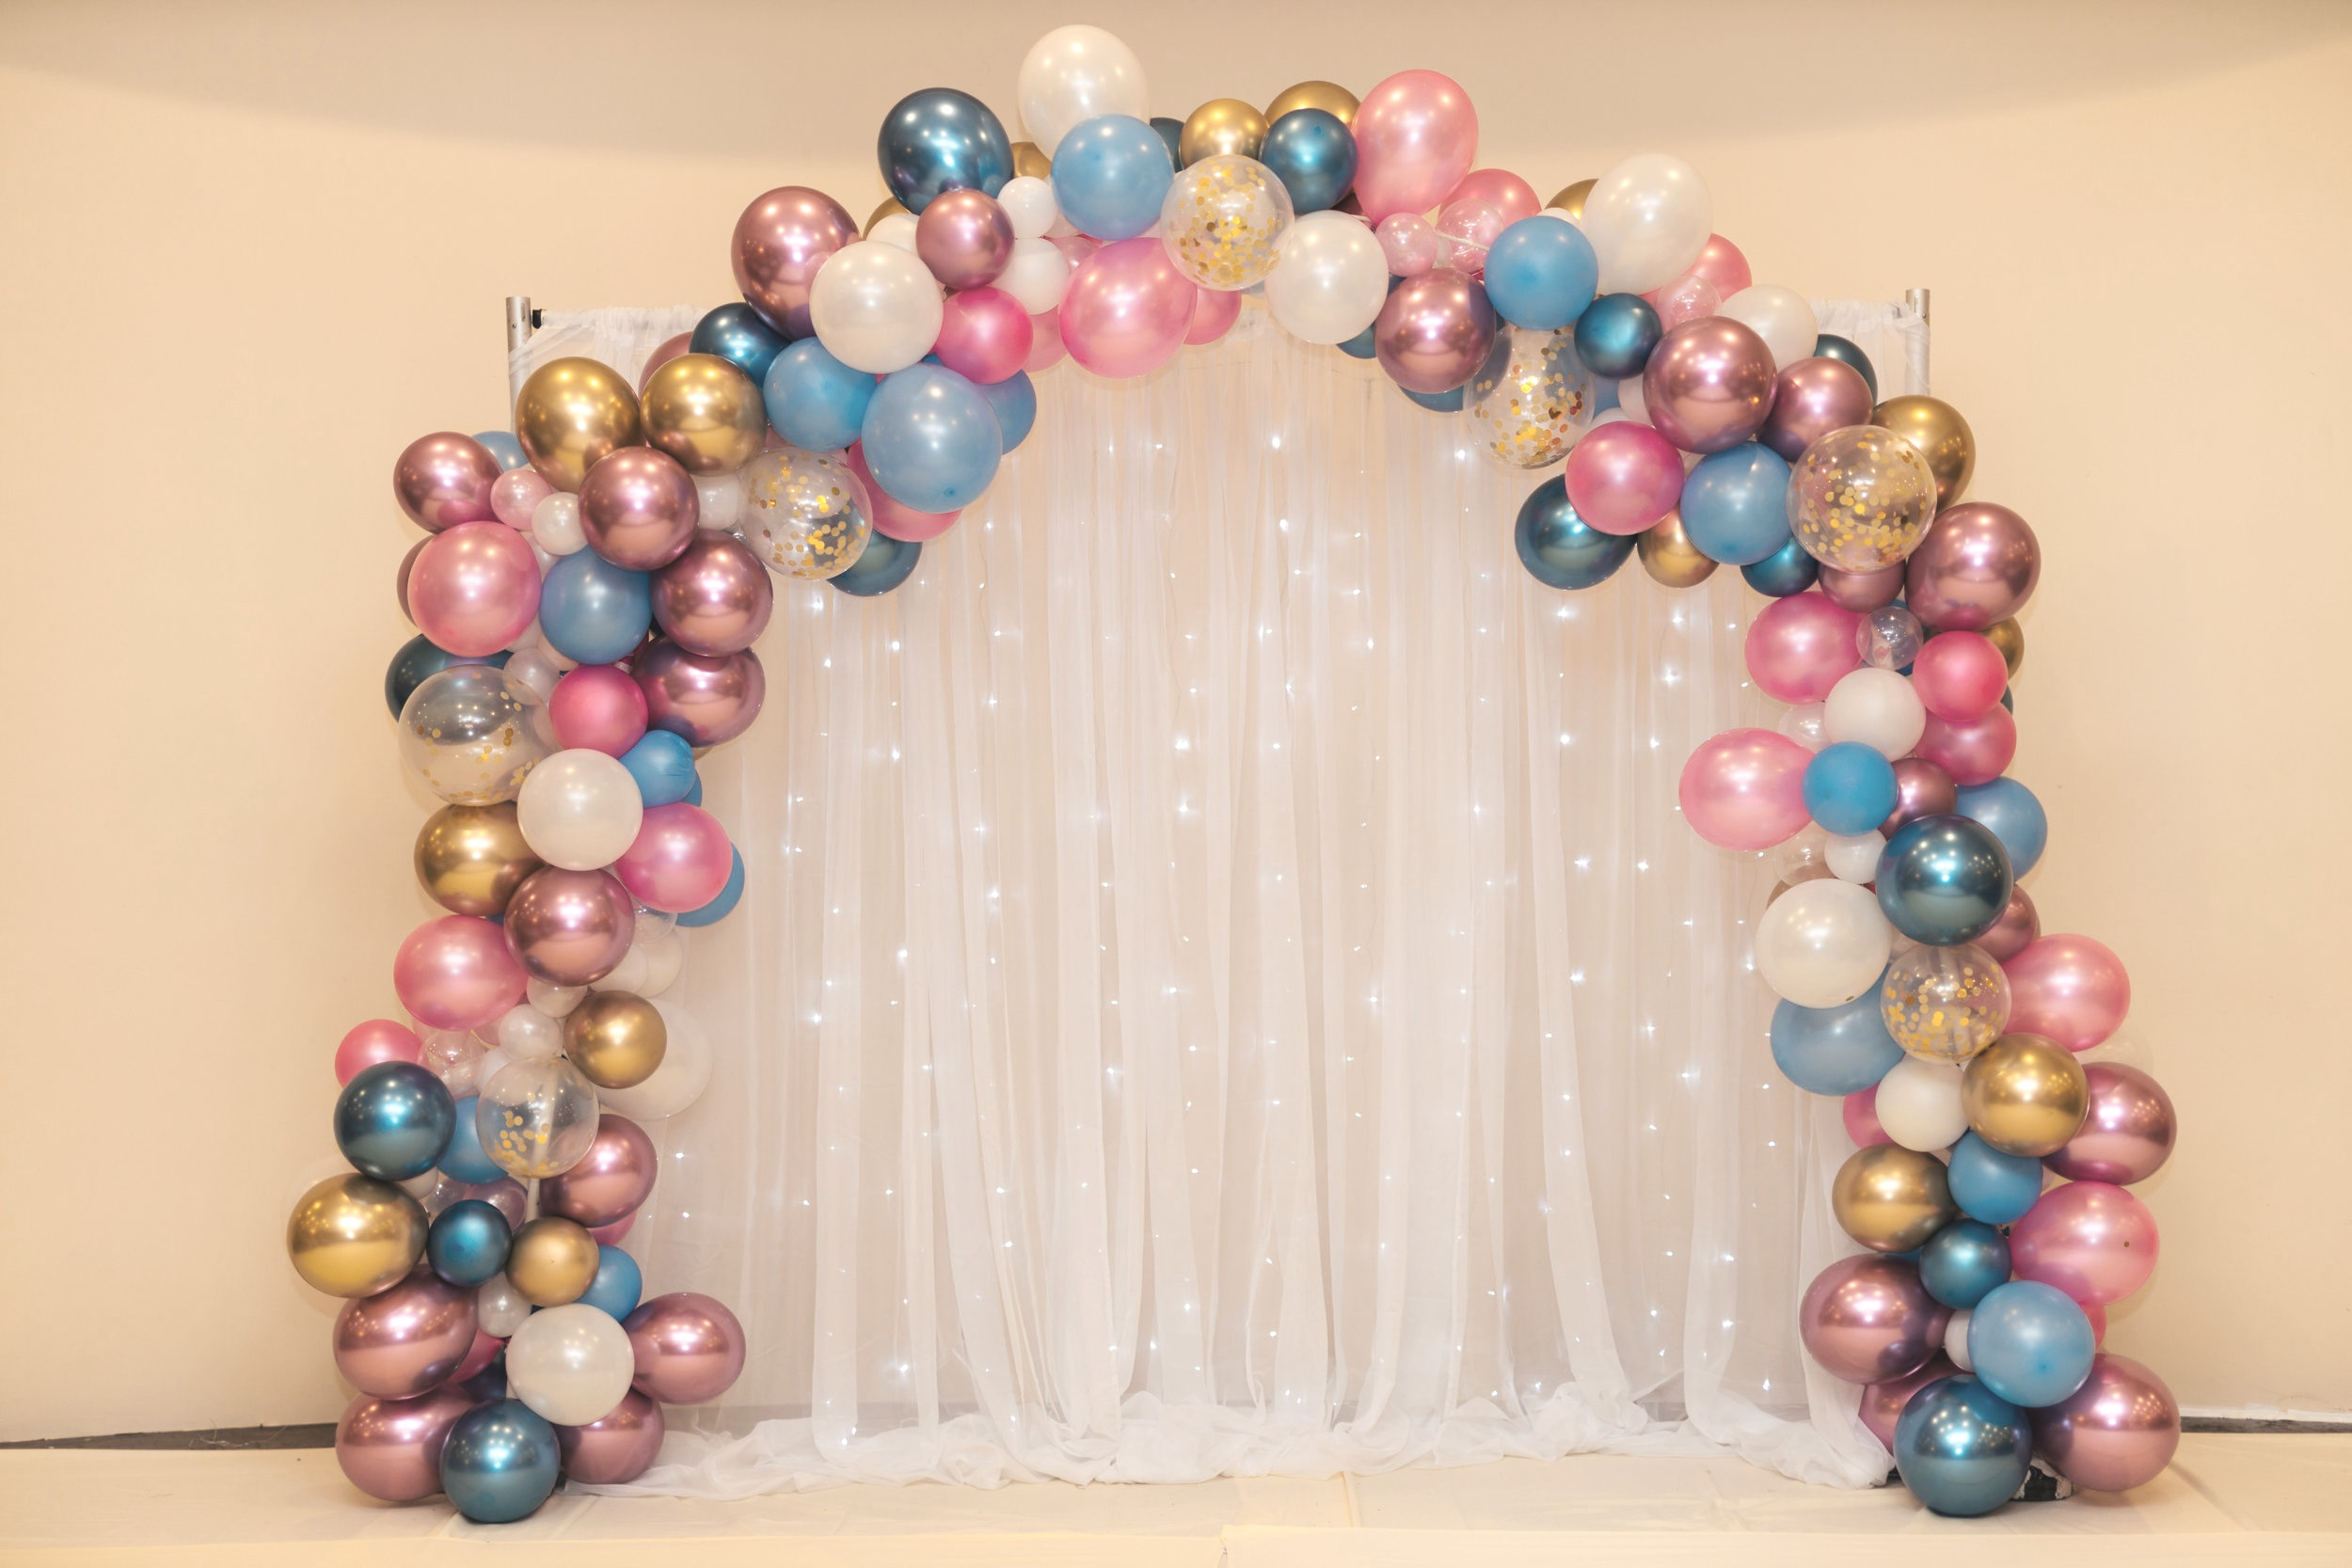 Balloonscapes are all the rage this year—check out our post on party planning trends in 2019 for more ideas!